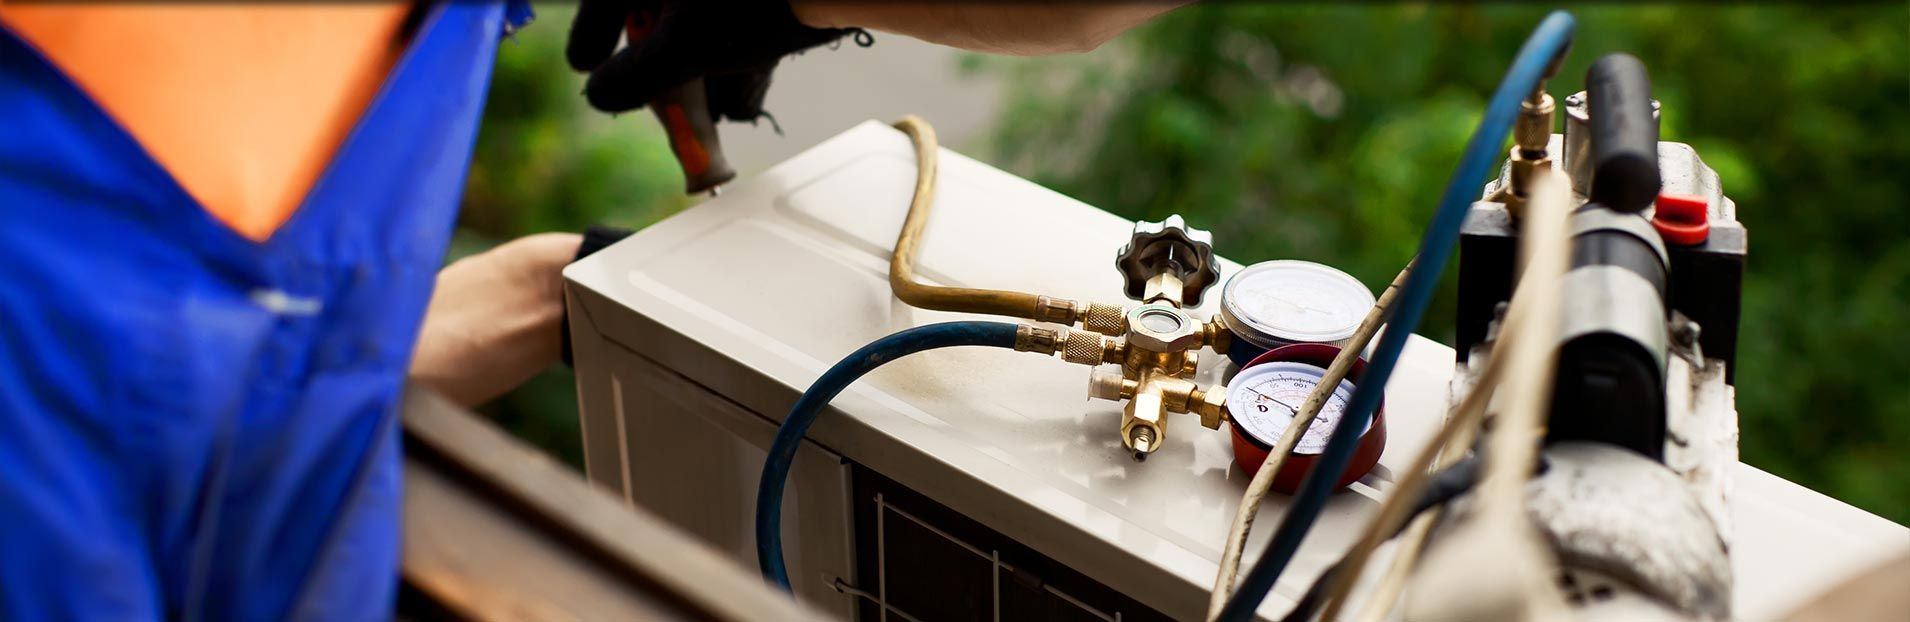 Air Conditioning Repair, Dallas Cooling & Heating, AC